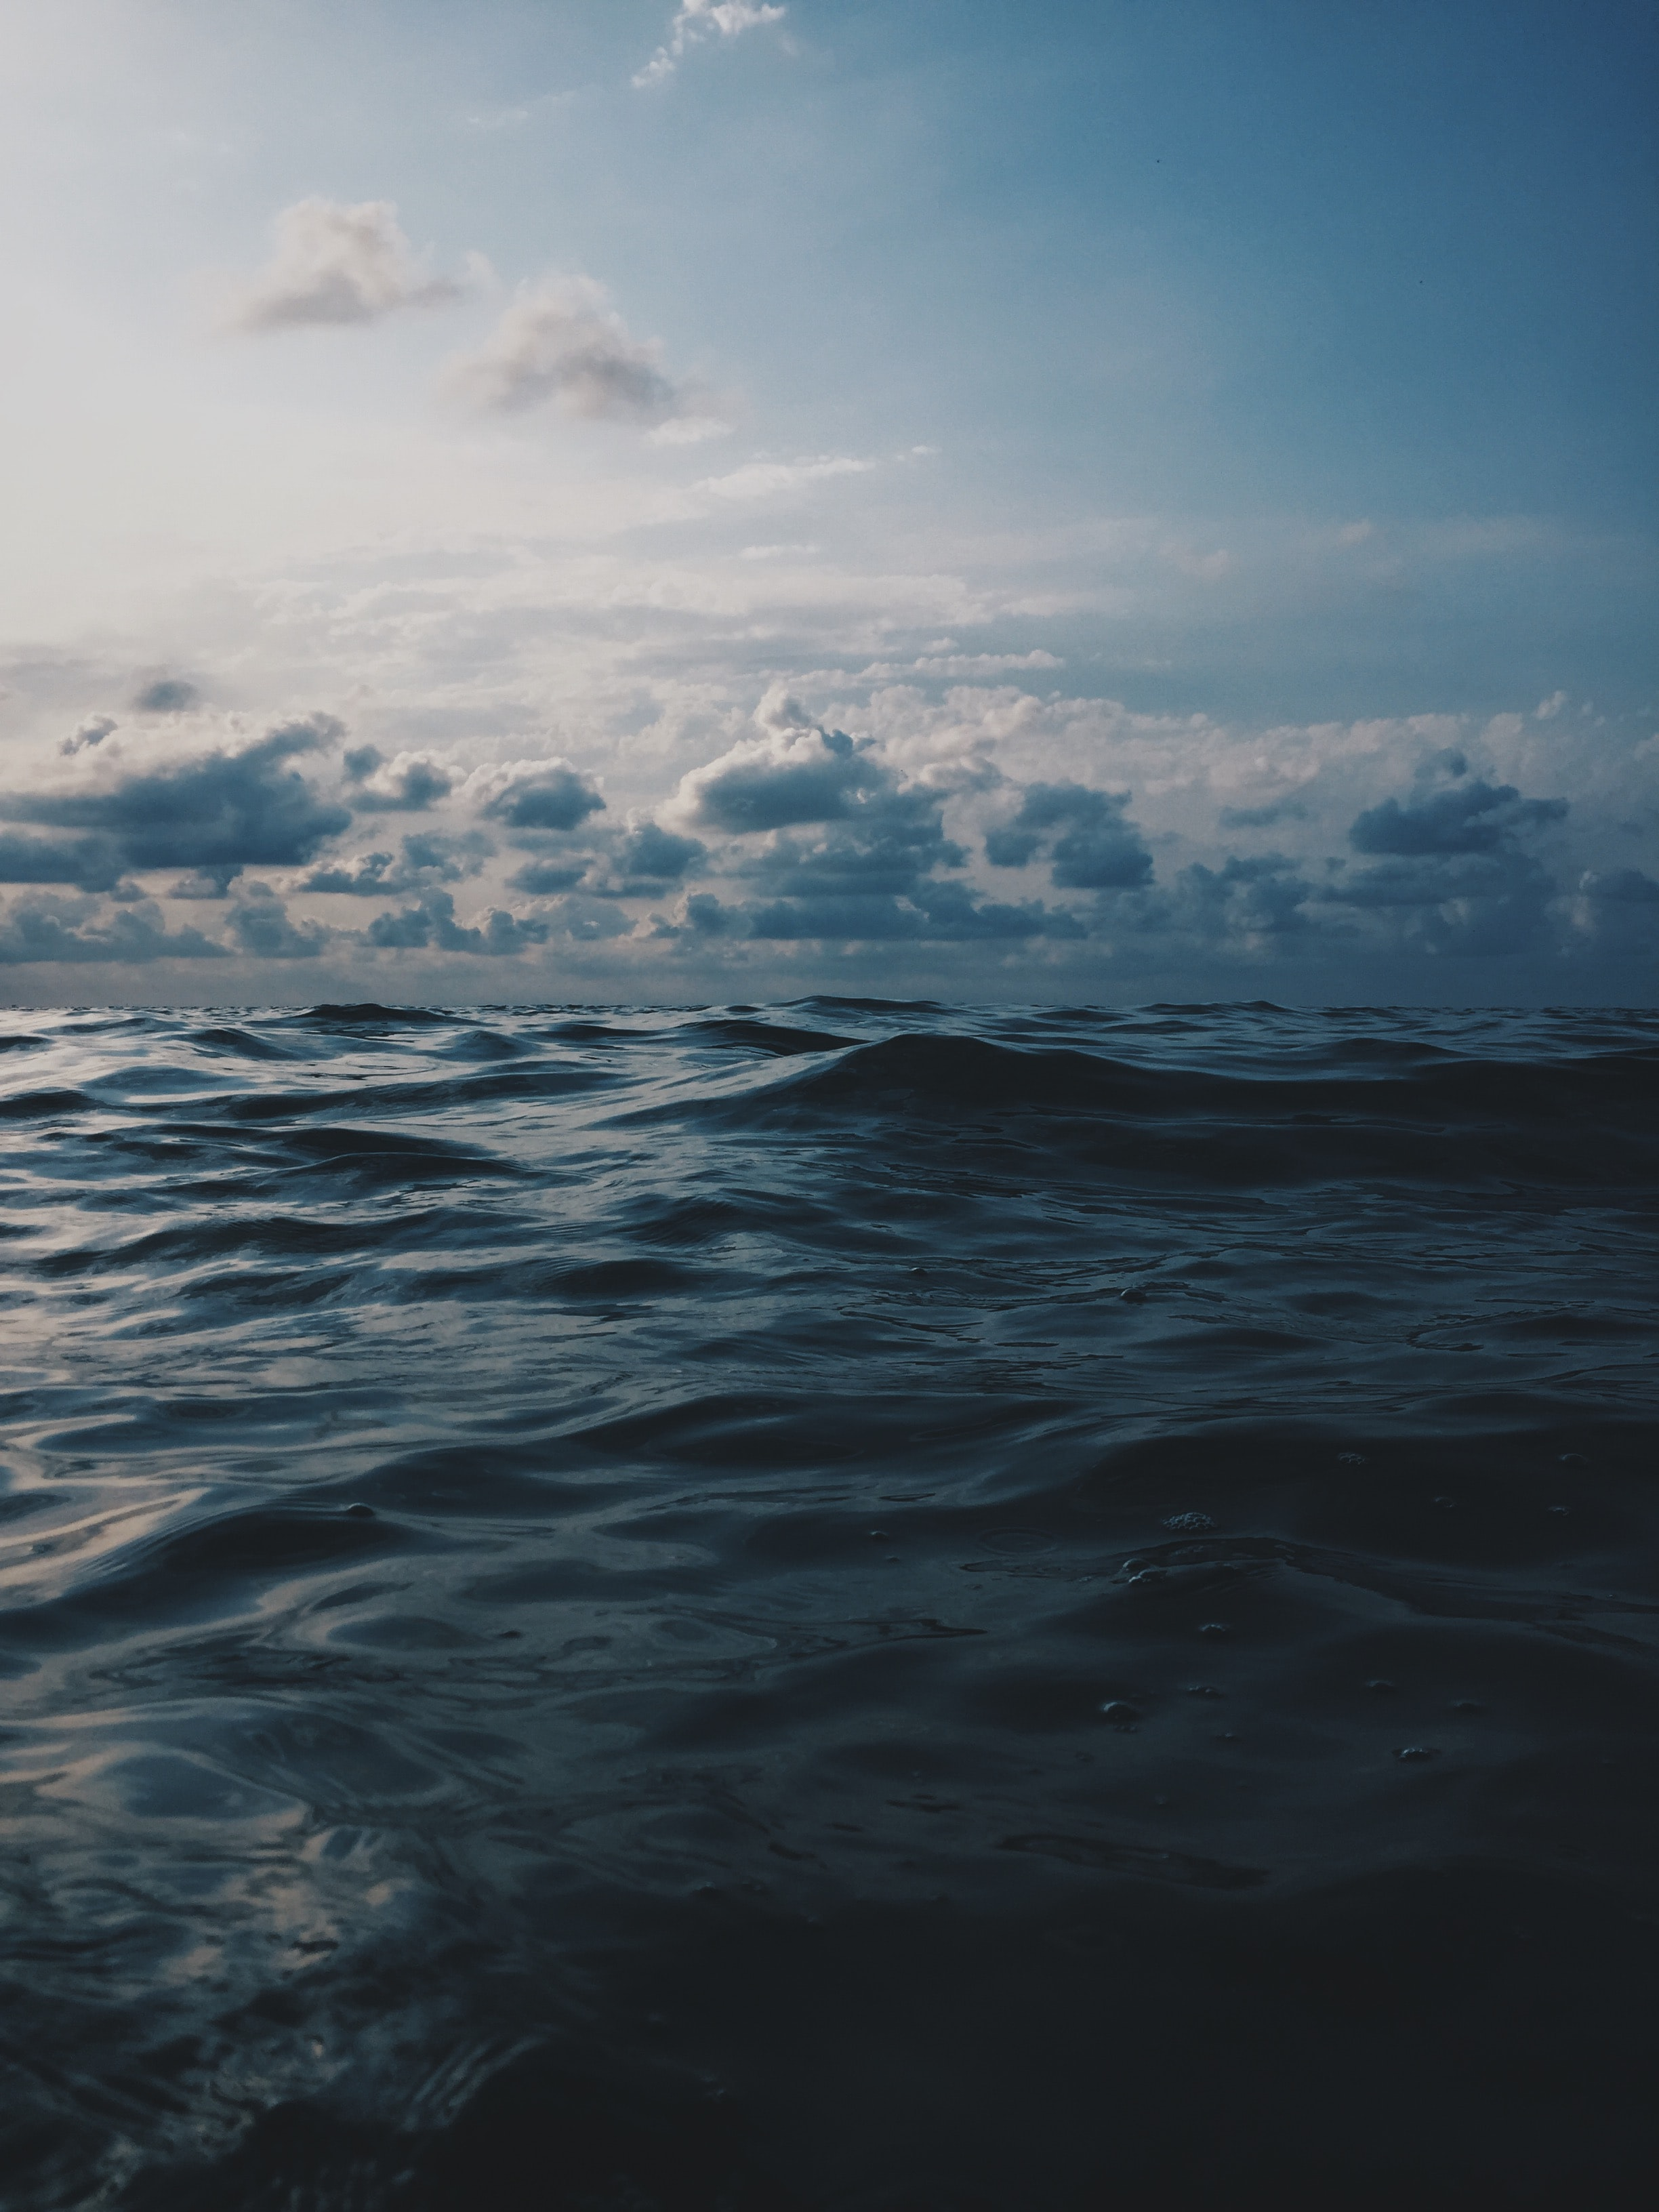 sea under white clouds during daytime